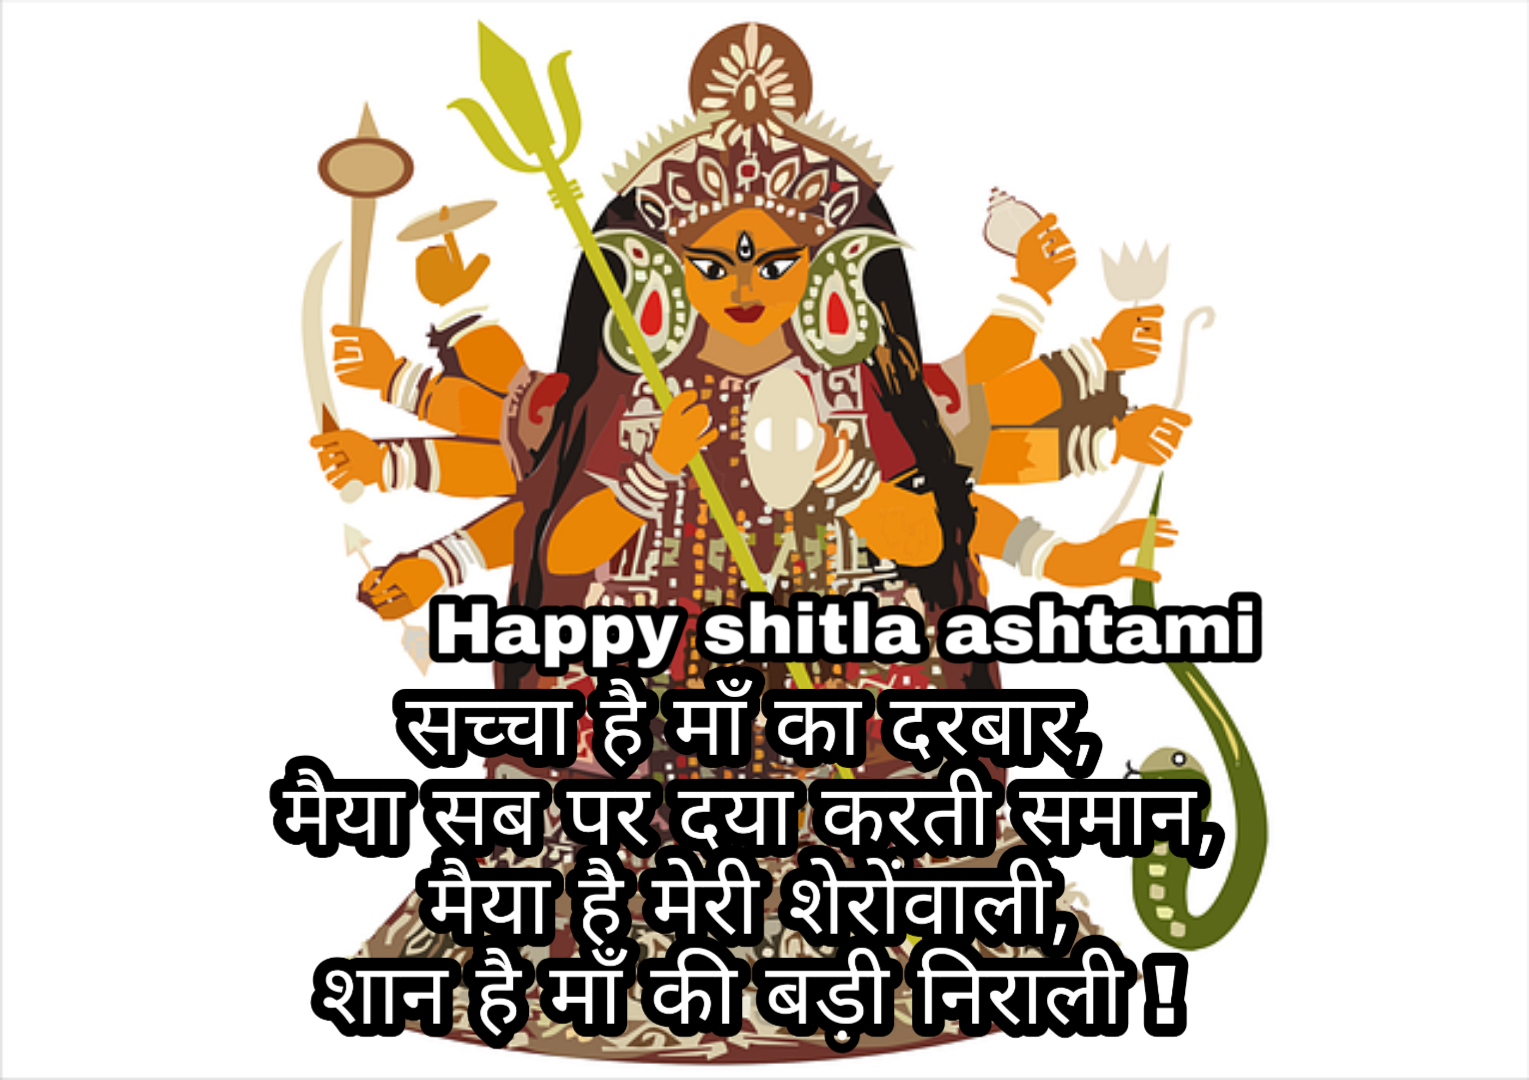 Sheetala ashtami shayari 2020 in hindi